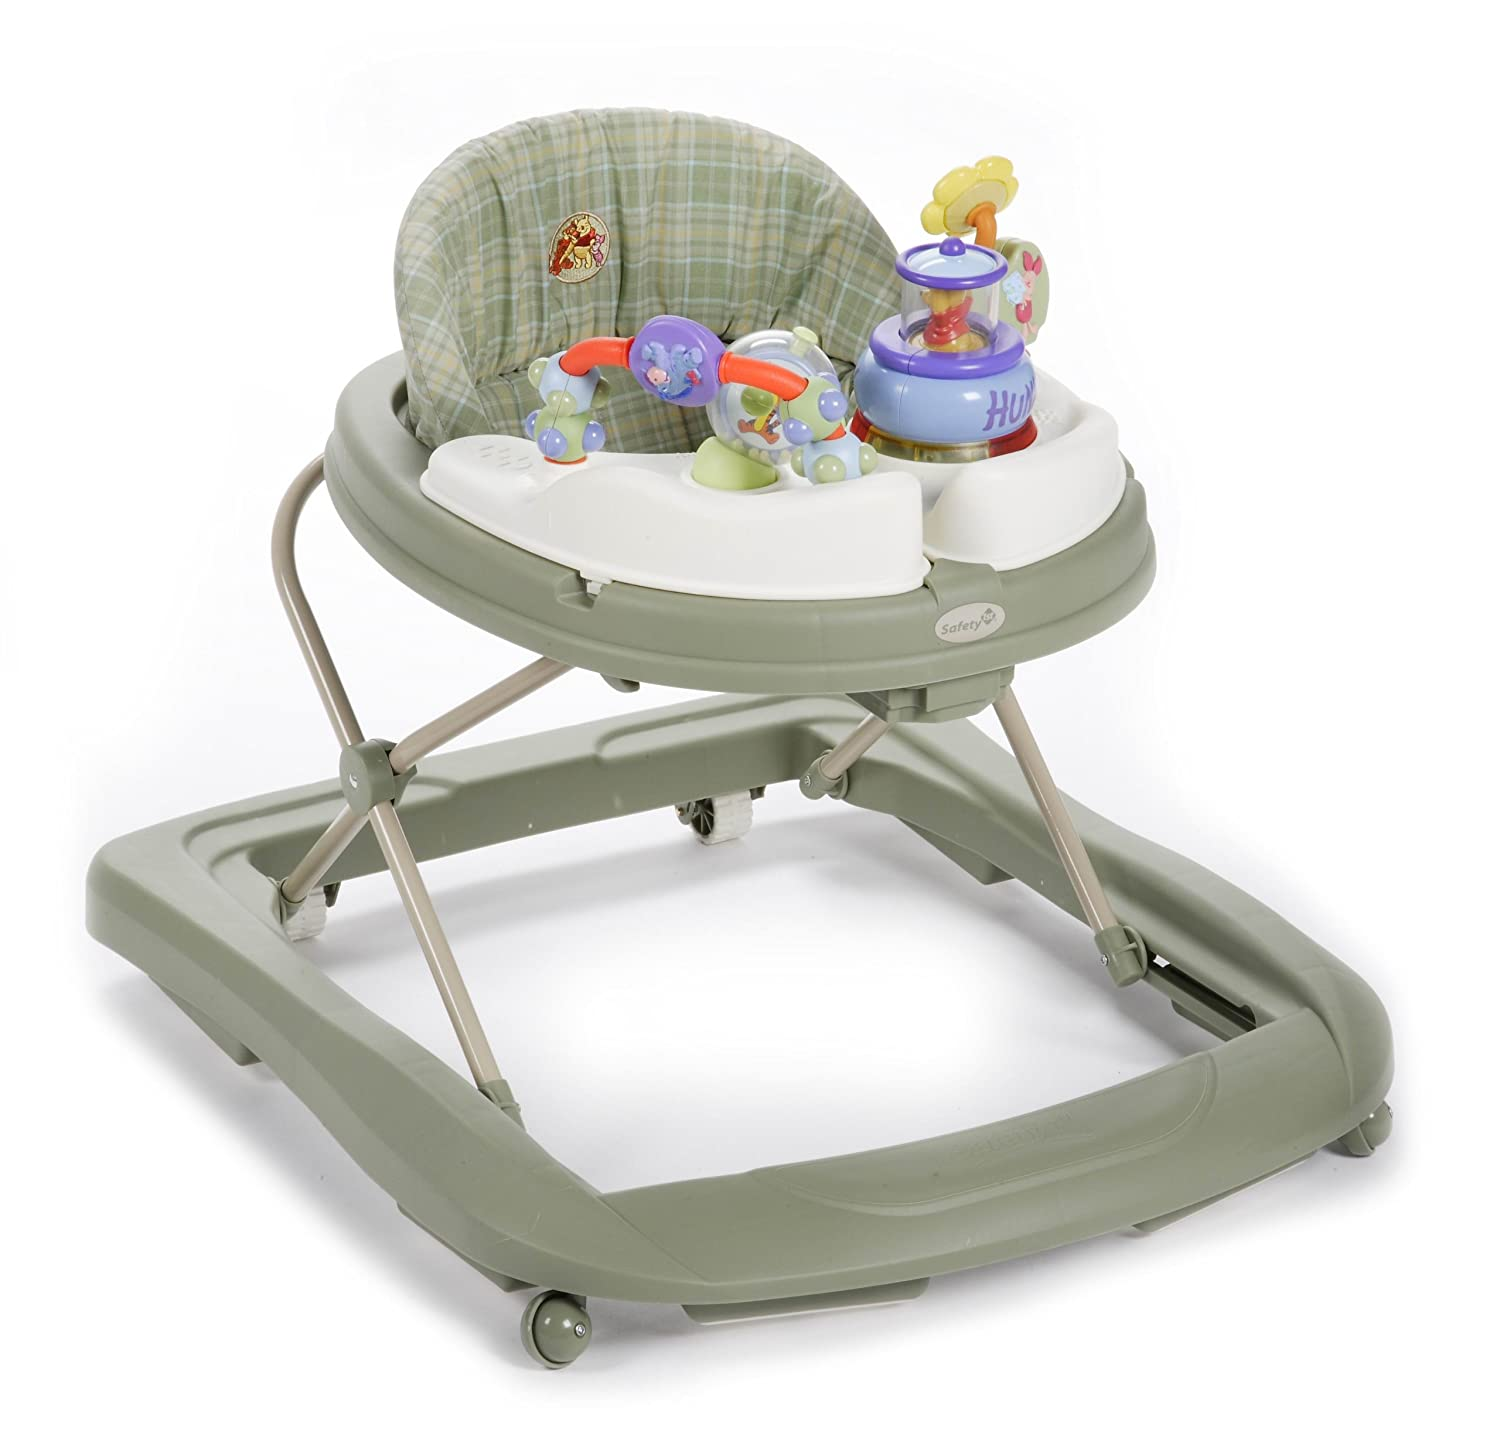 Disney walker pooh - Amazon Com Disney Baby Music And Lights Walker New Ambrosia Discontinued By Manufacturer Baby